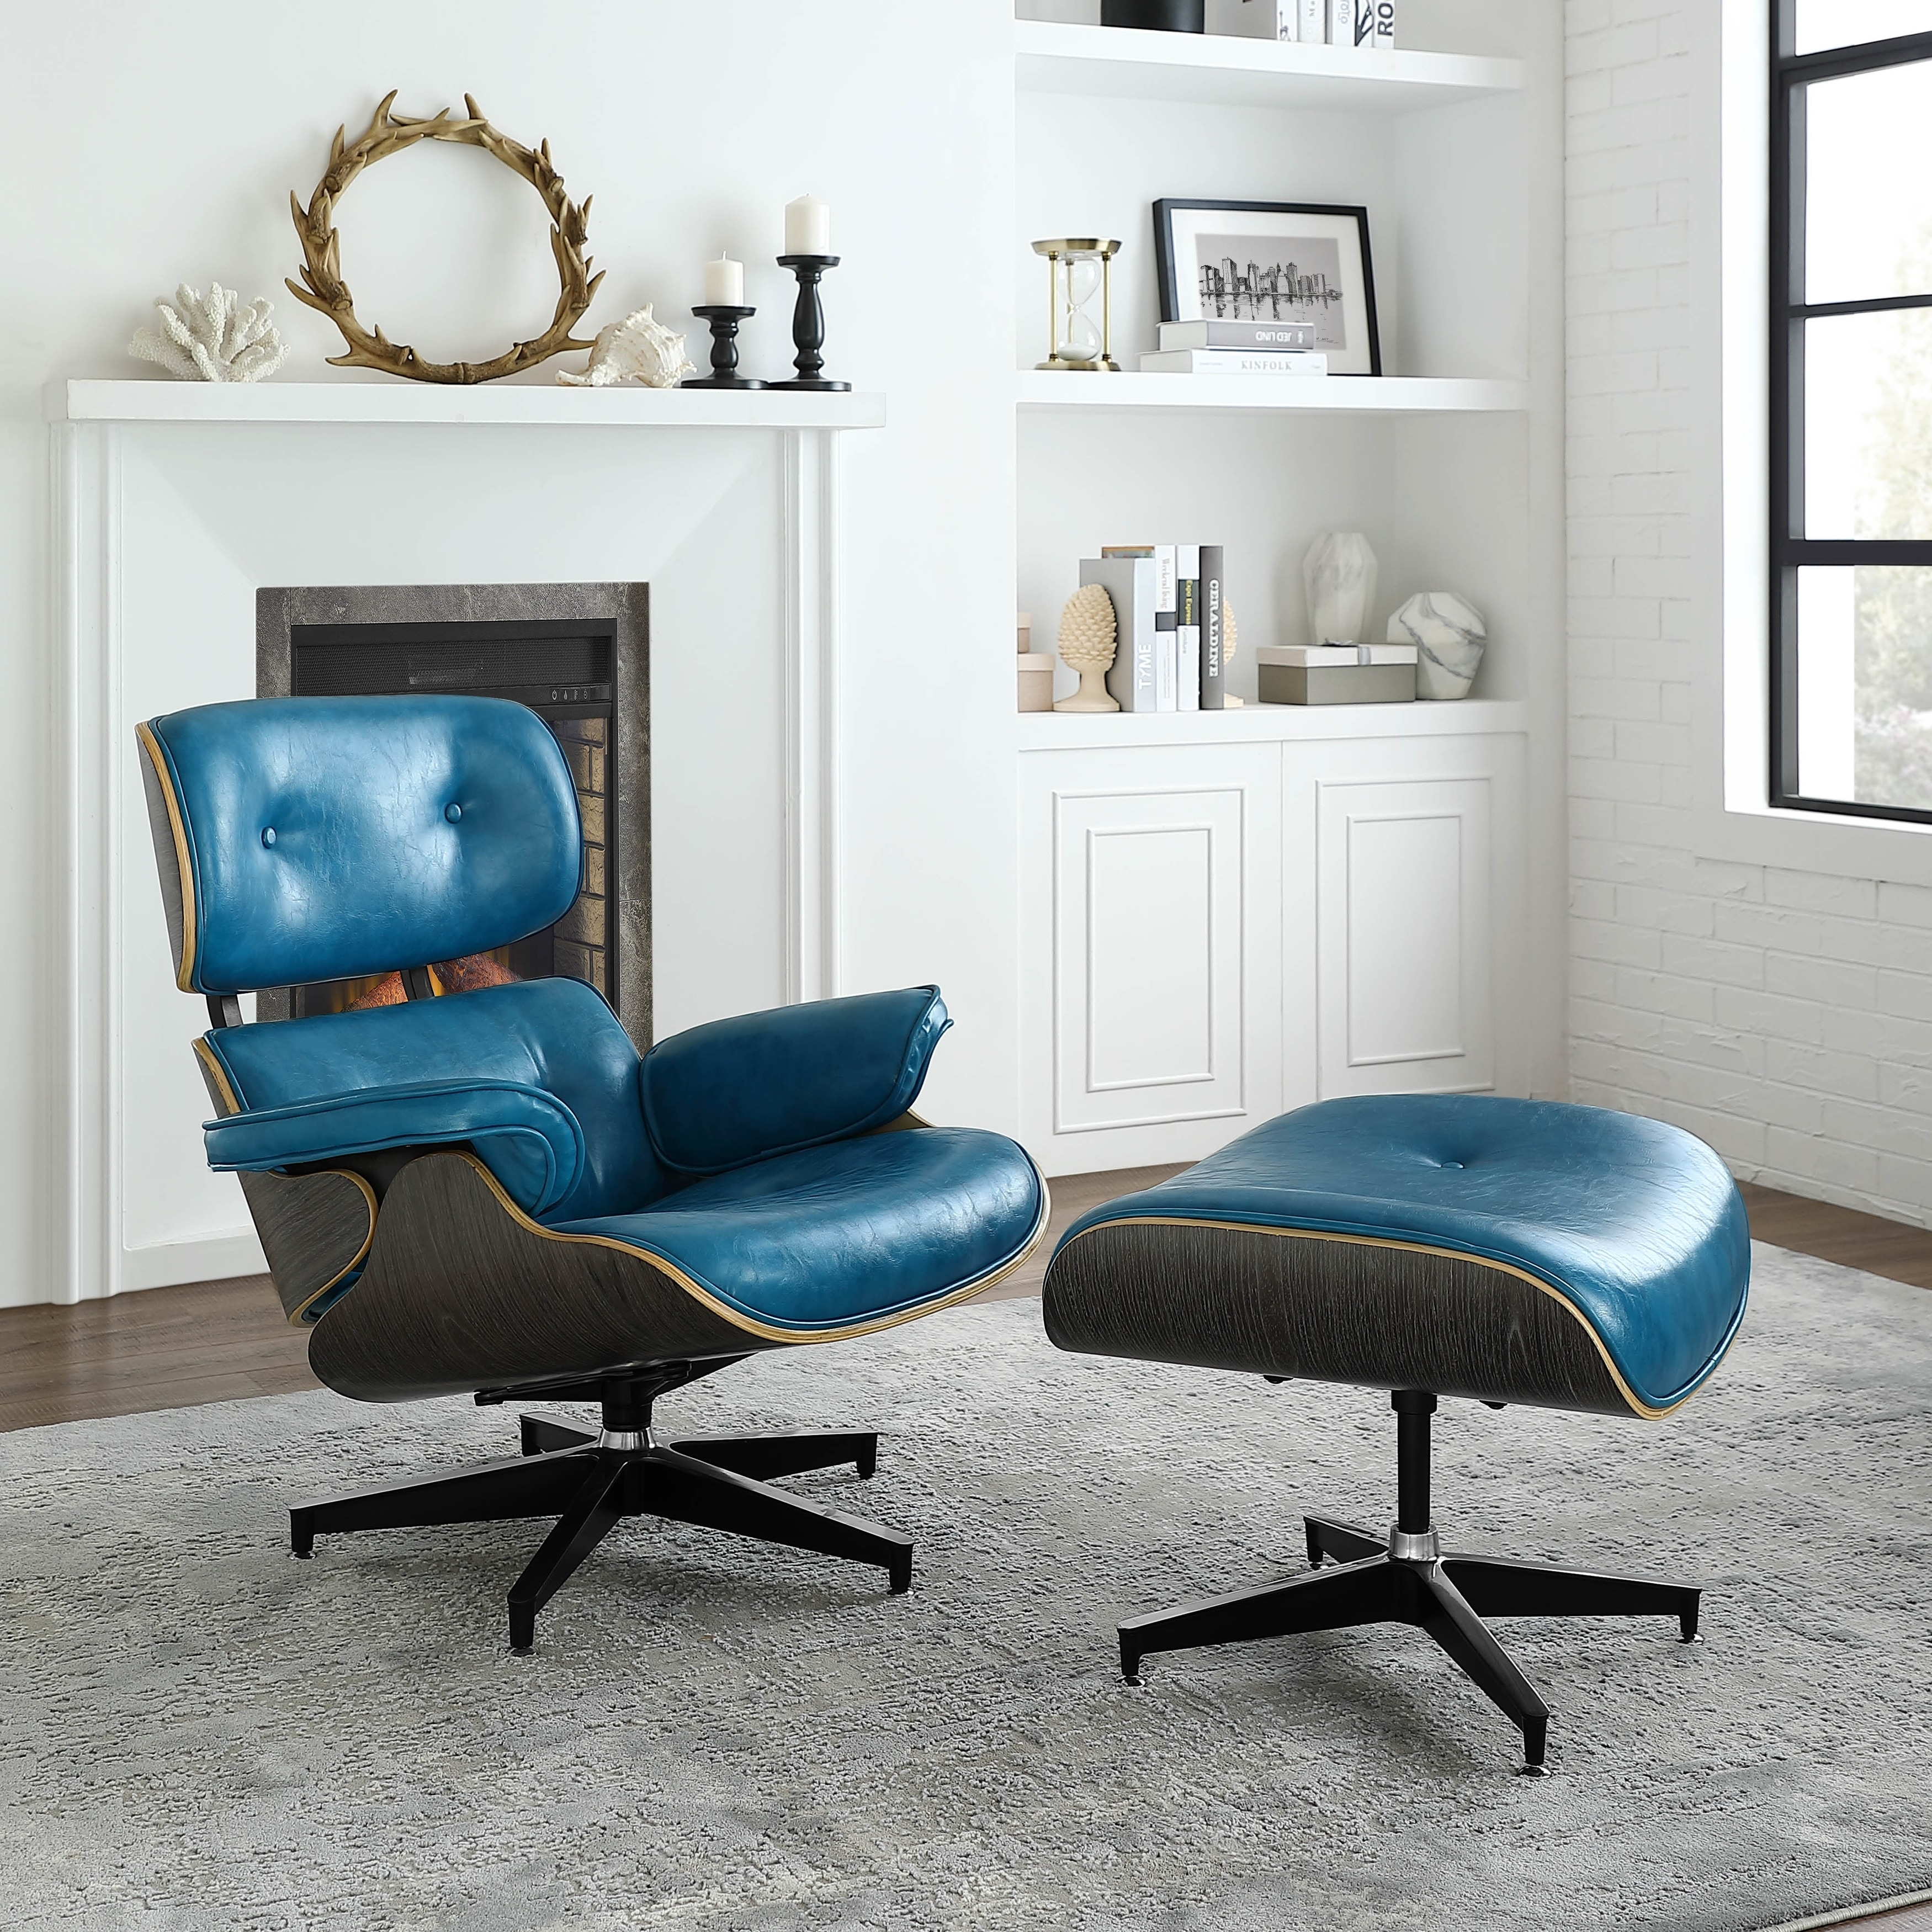 Remarkable Corvus Neville Mid Century Lounge Chair Set With Ottoman Ncnpc Chair Design For Home Ncnpcorg